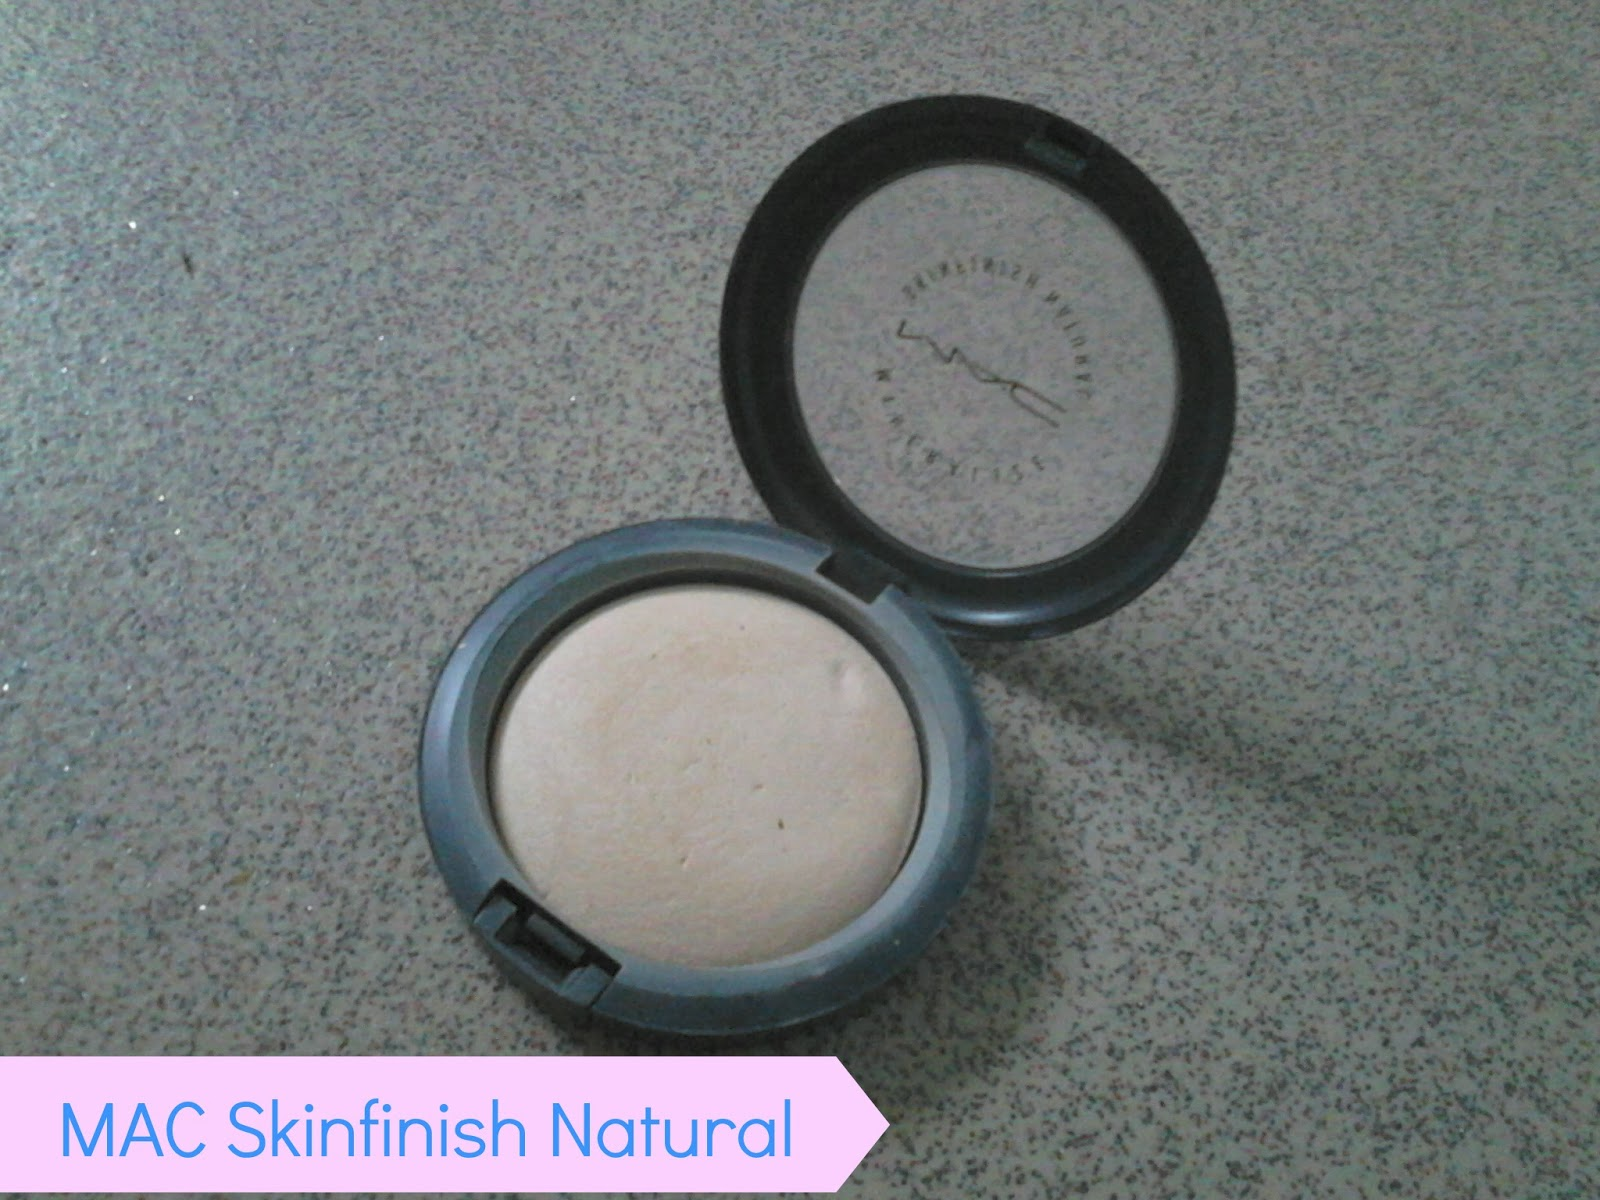 MAC Skinfinish Natural in Light